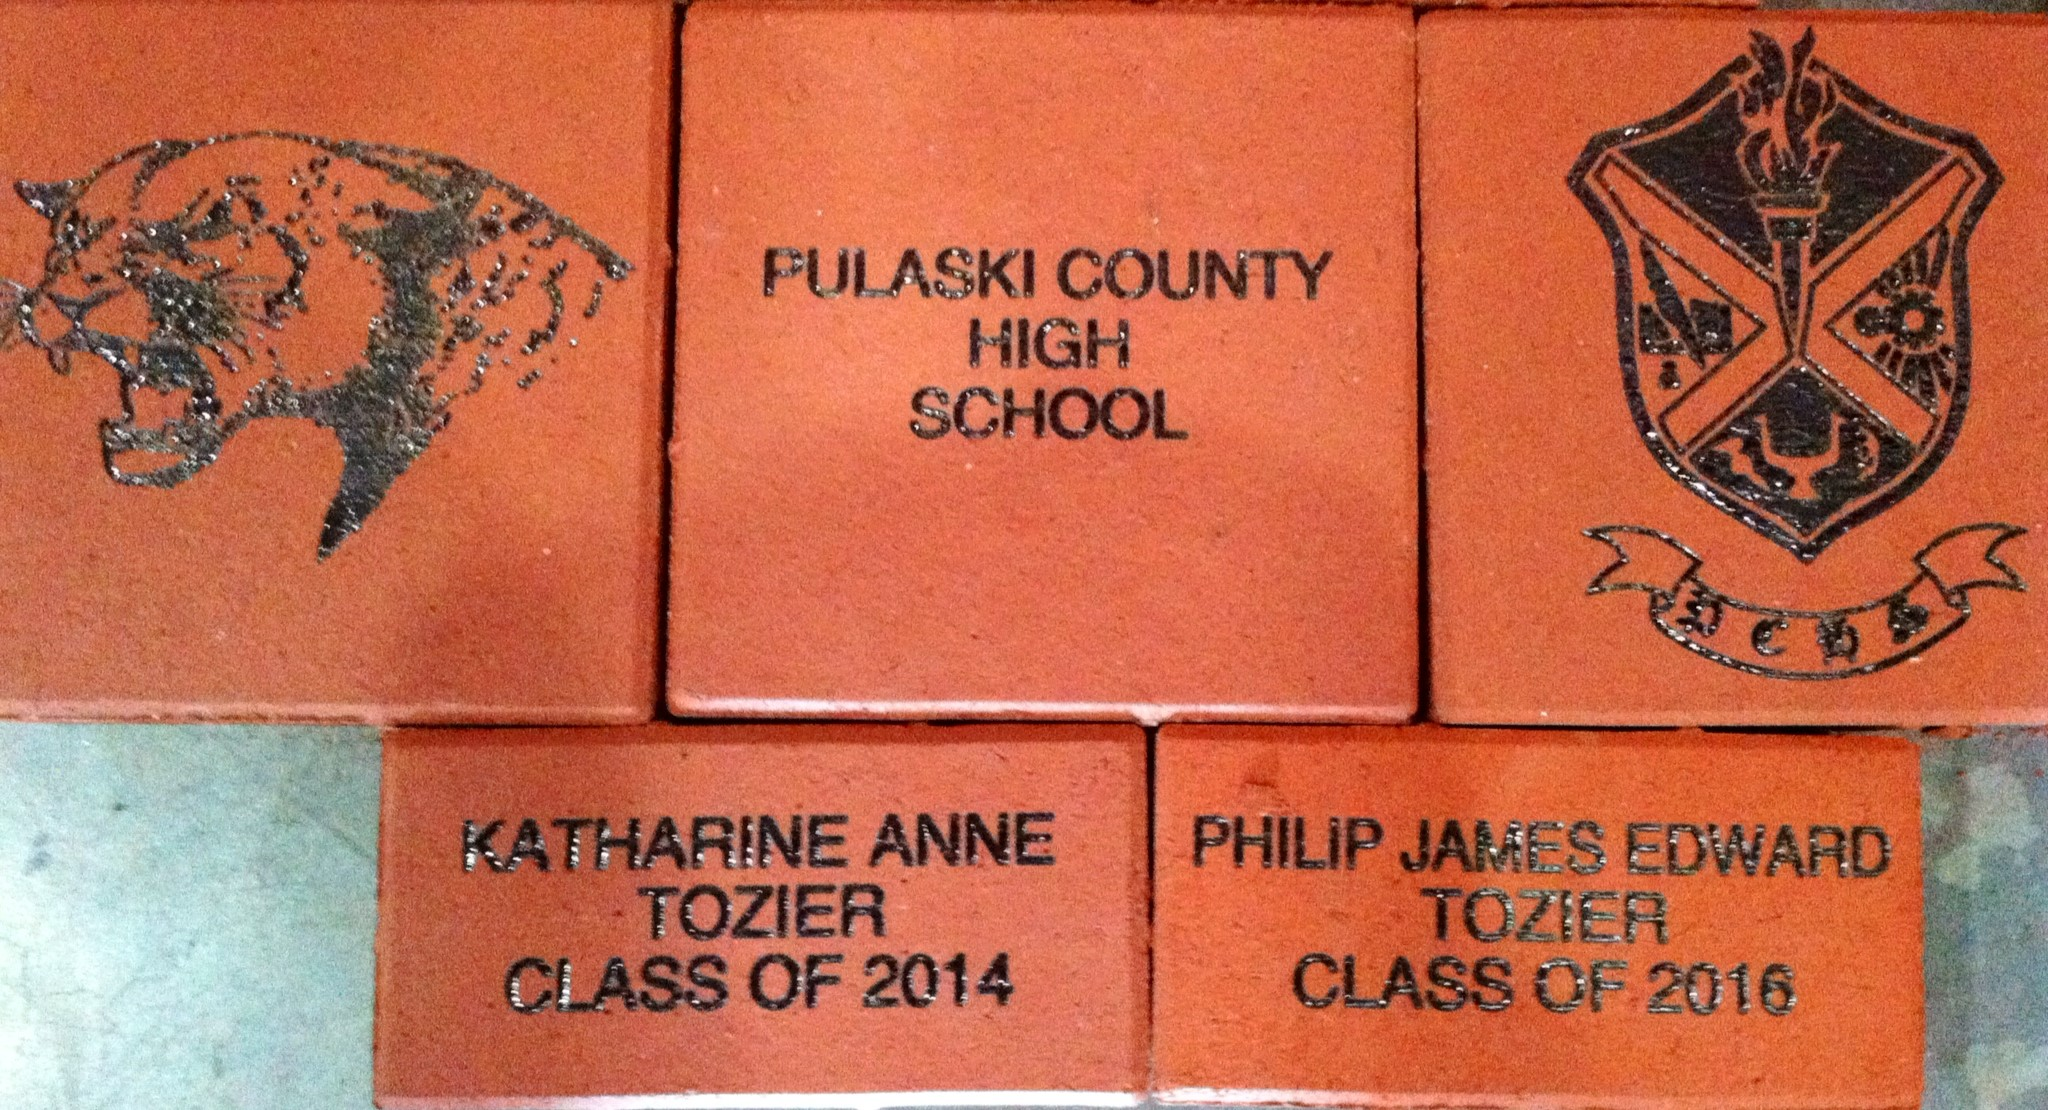 Consider a brick for your favorite graduate